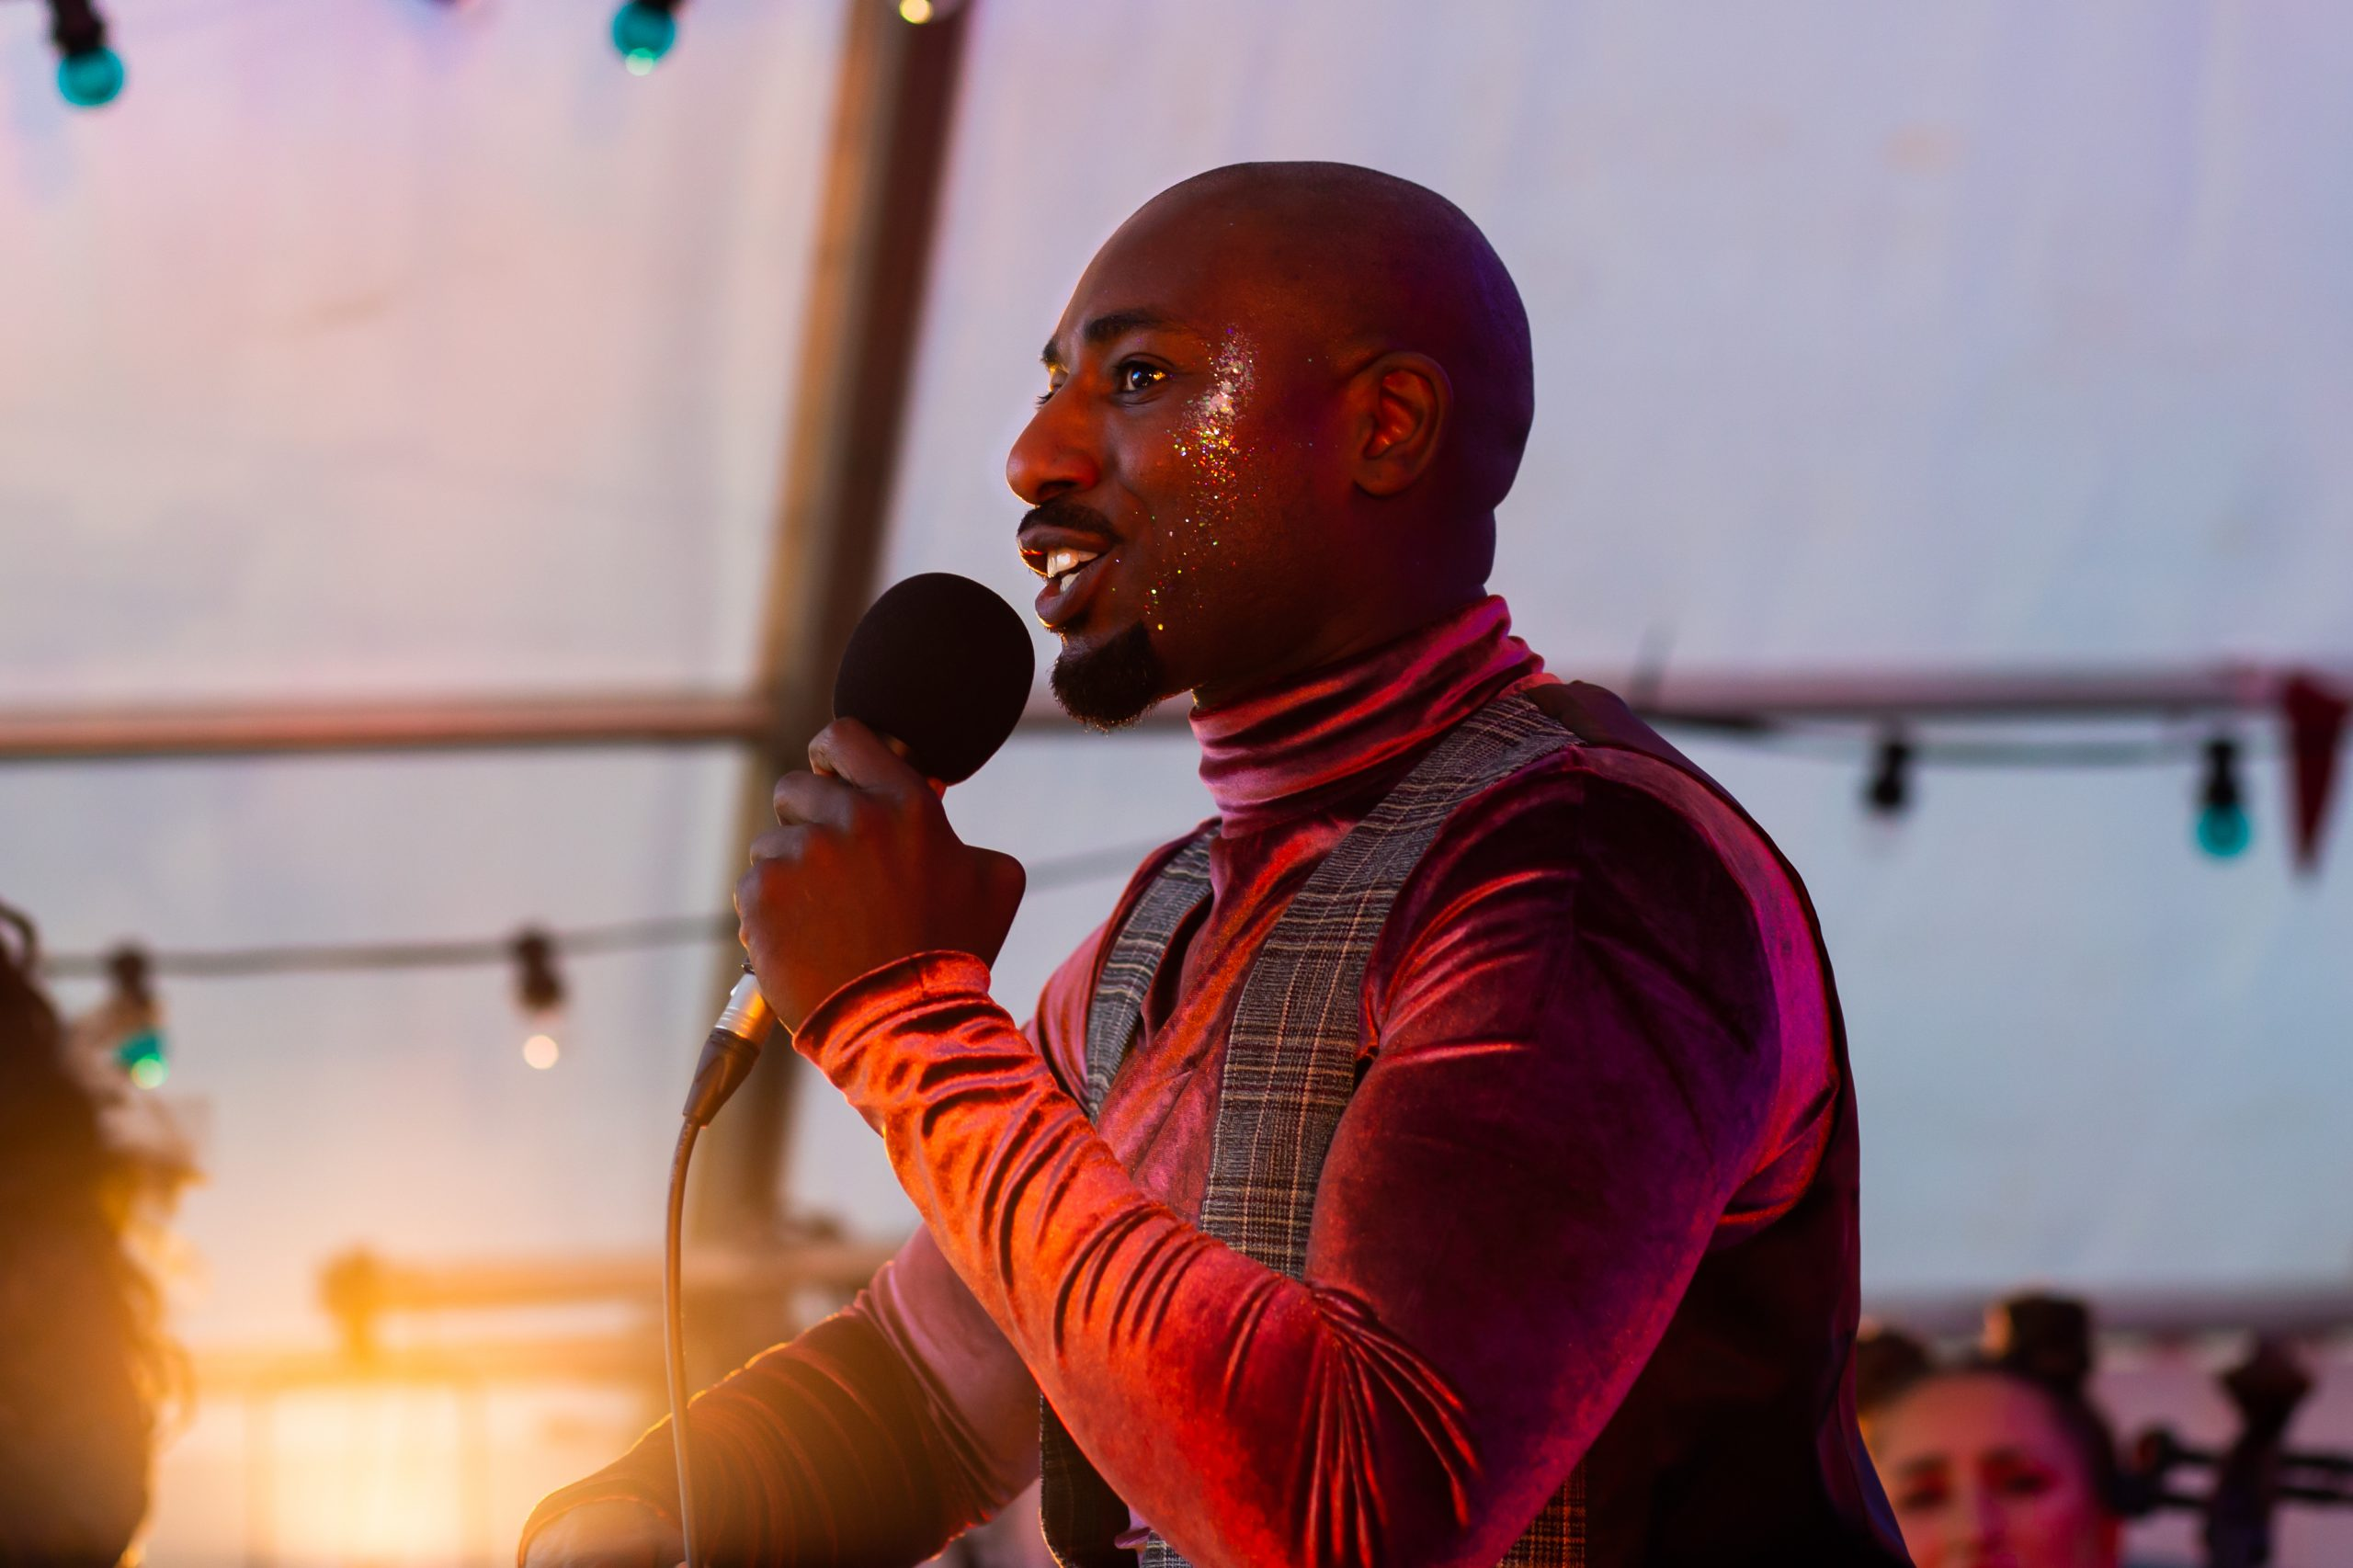 A Black man in velvet turtleneck and waistcoat sings into a microphone